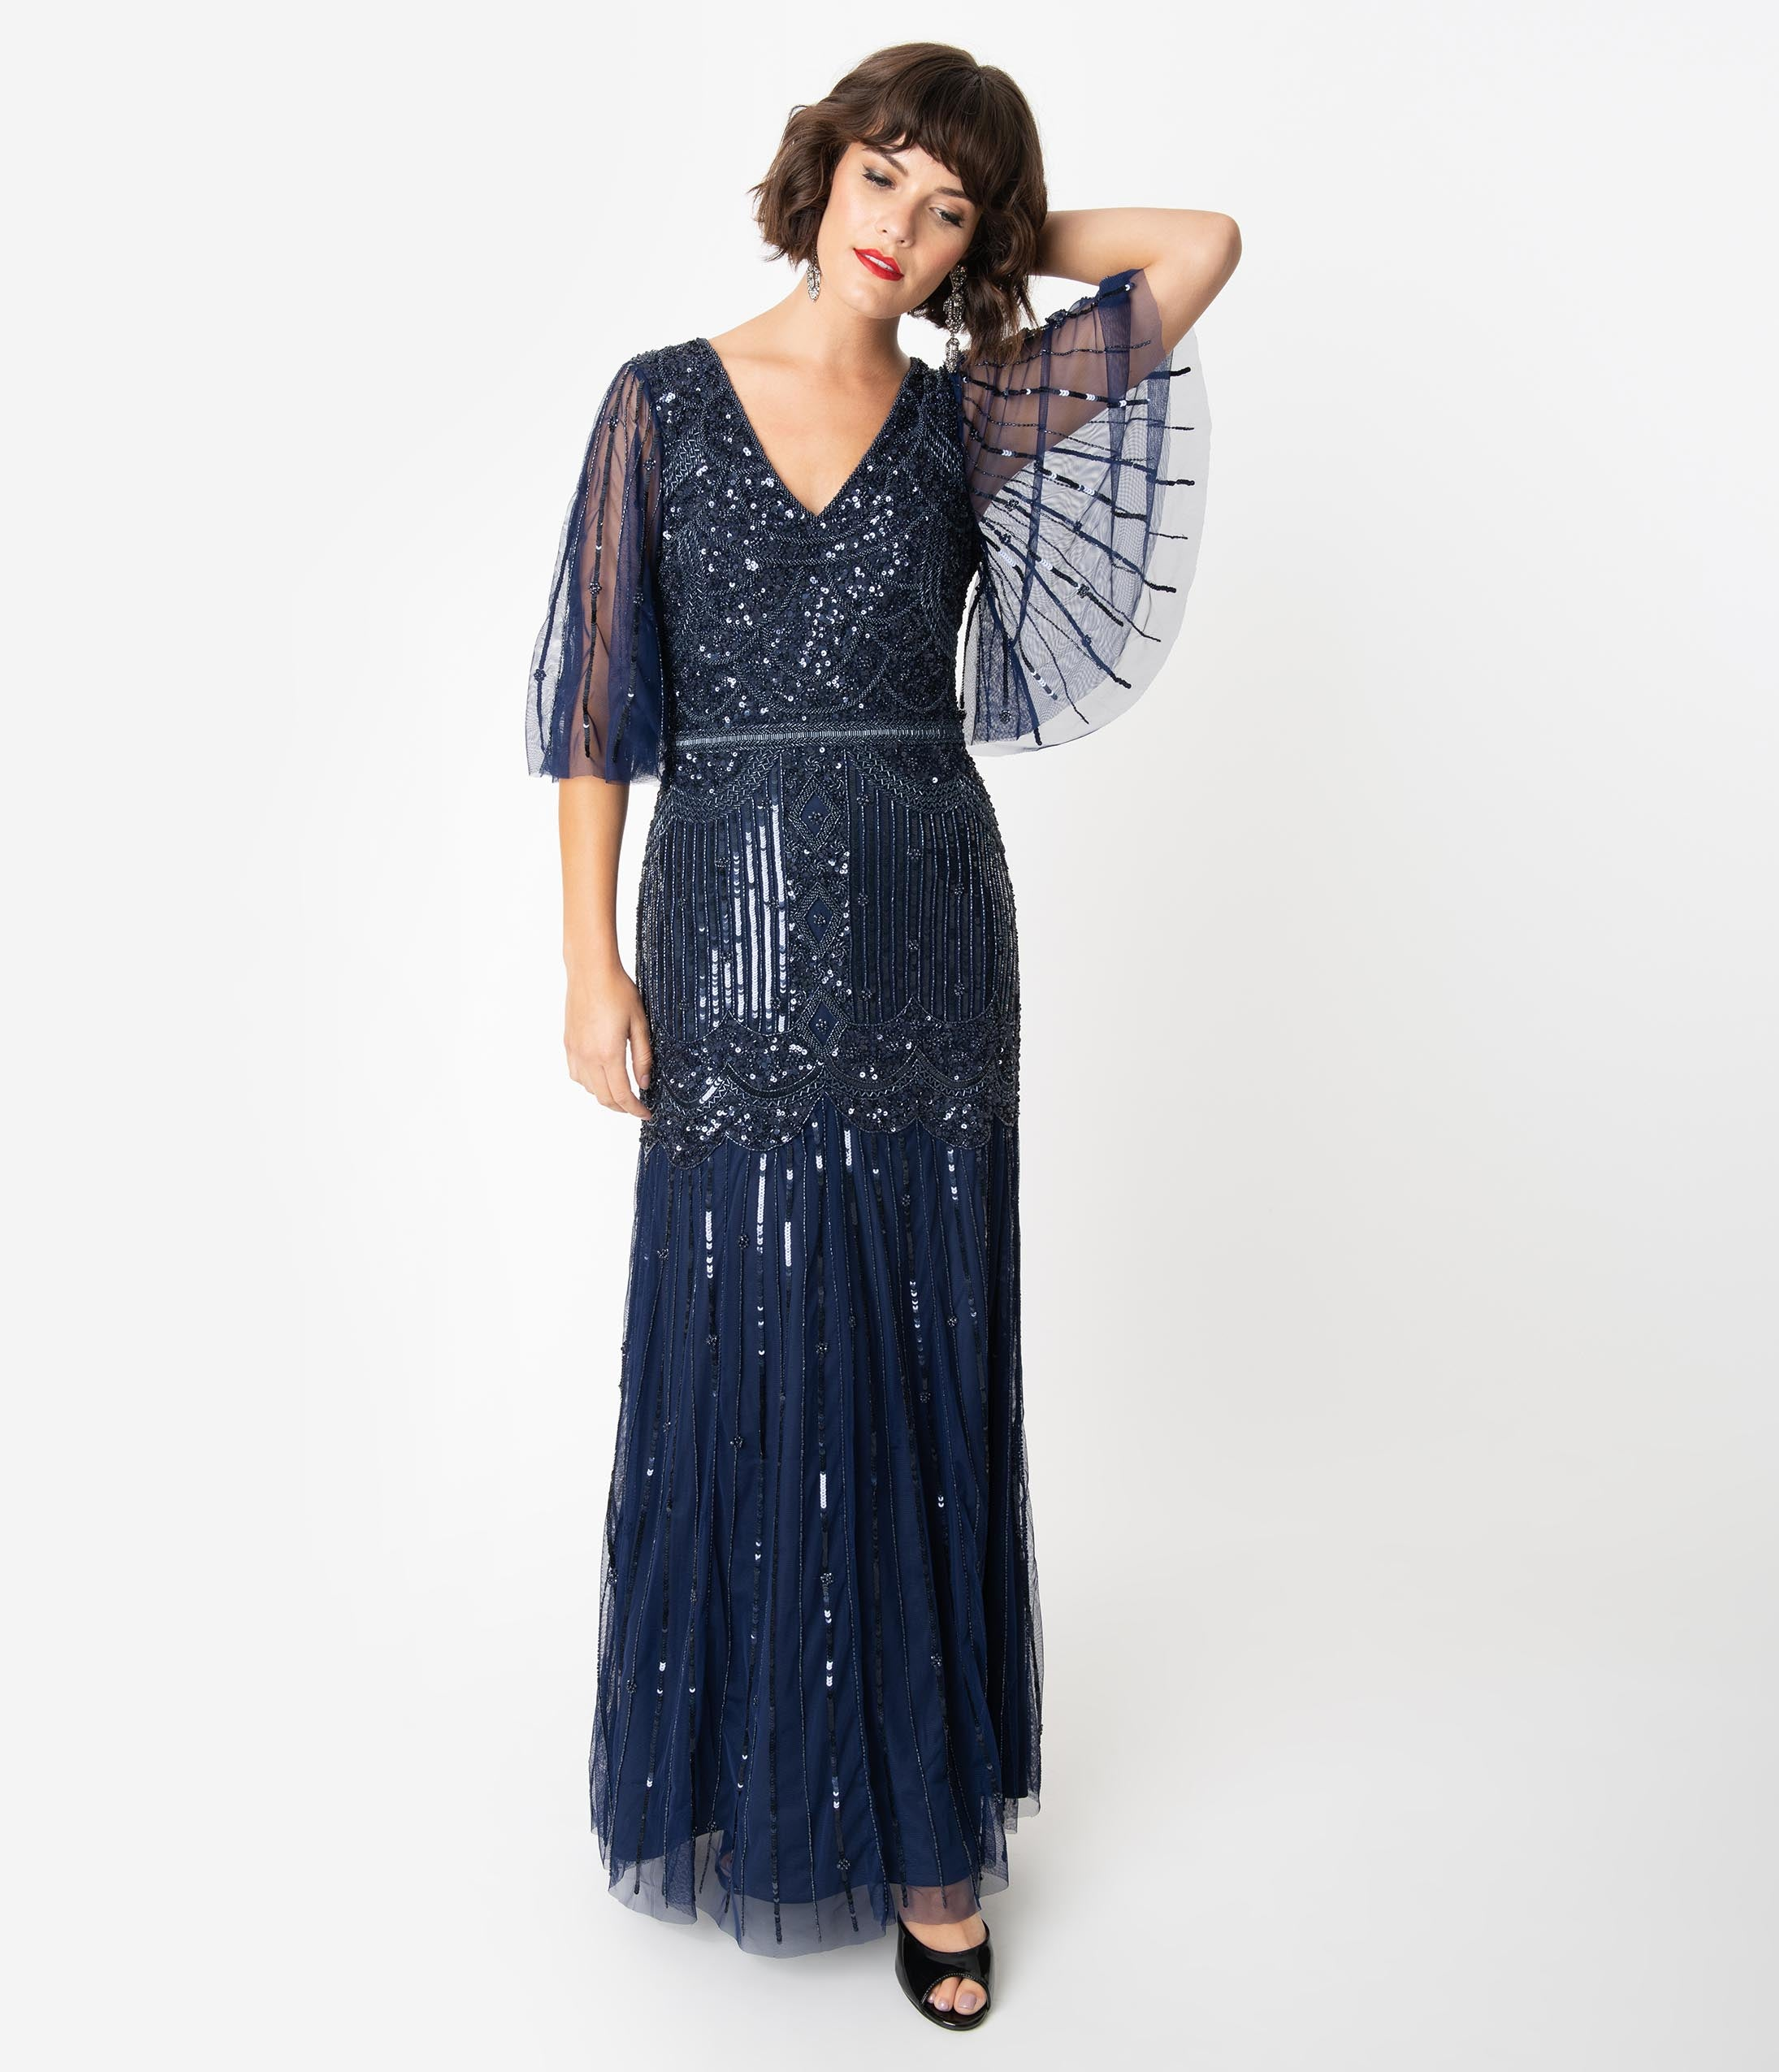 1930s Day Dresses, Afternoon Dresses History Navy Blue Sequin  Beaded Angel Sleeve Bettina Long Flapper Dress $268.00 AT vintagedancer.com